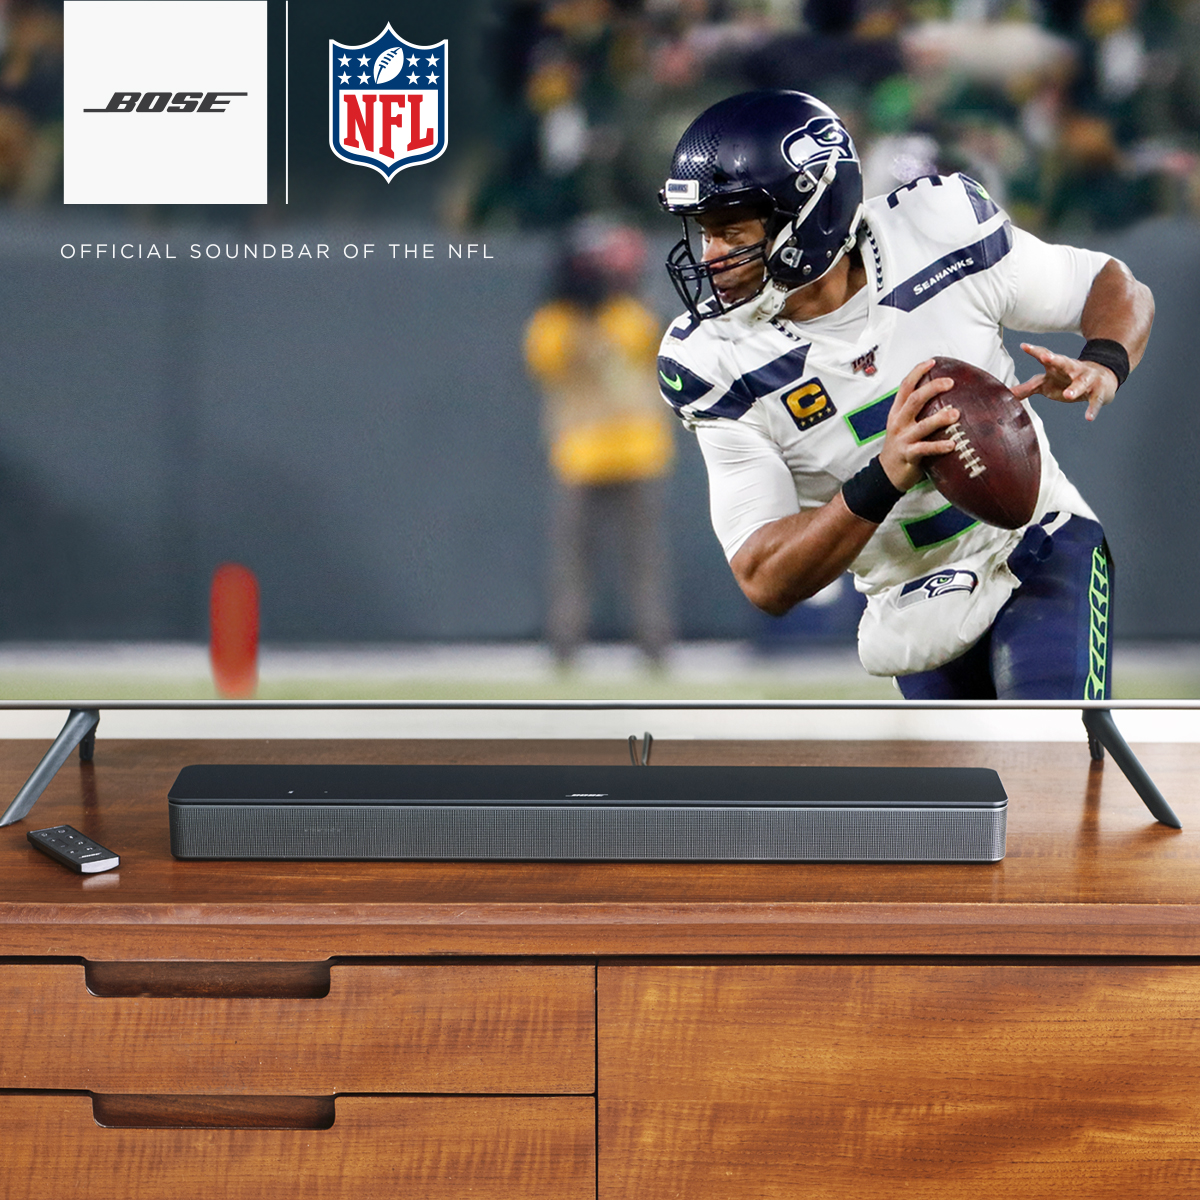 No stadium? No problem. Tuning into the @Patriots vs. @Seahawks game with the new Bose Smart Soundbar 300 makes you feel like you're really there — from the comfort of your couch. https://t.co/EzZJAUTo7M #BoseSpeakers #NEvsSEA #SNF https://t.co/lcgFBLc1Mt